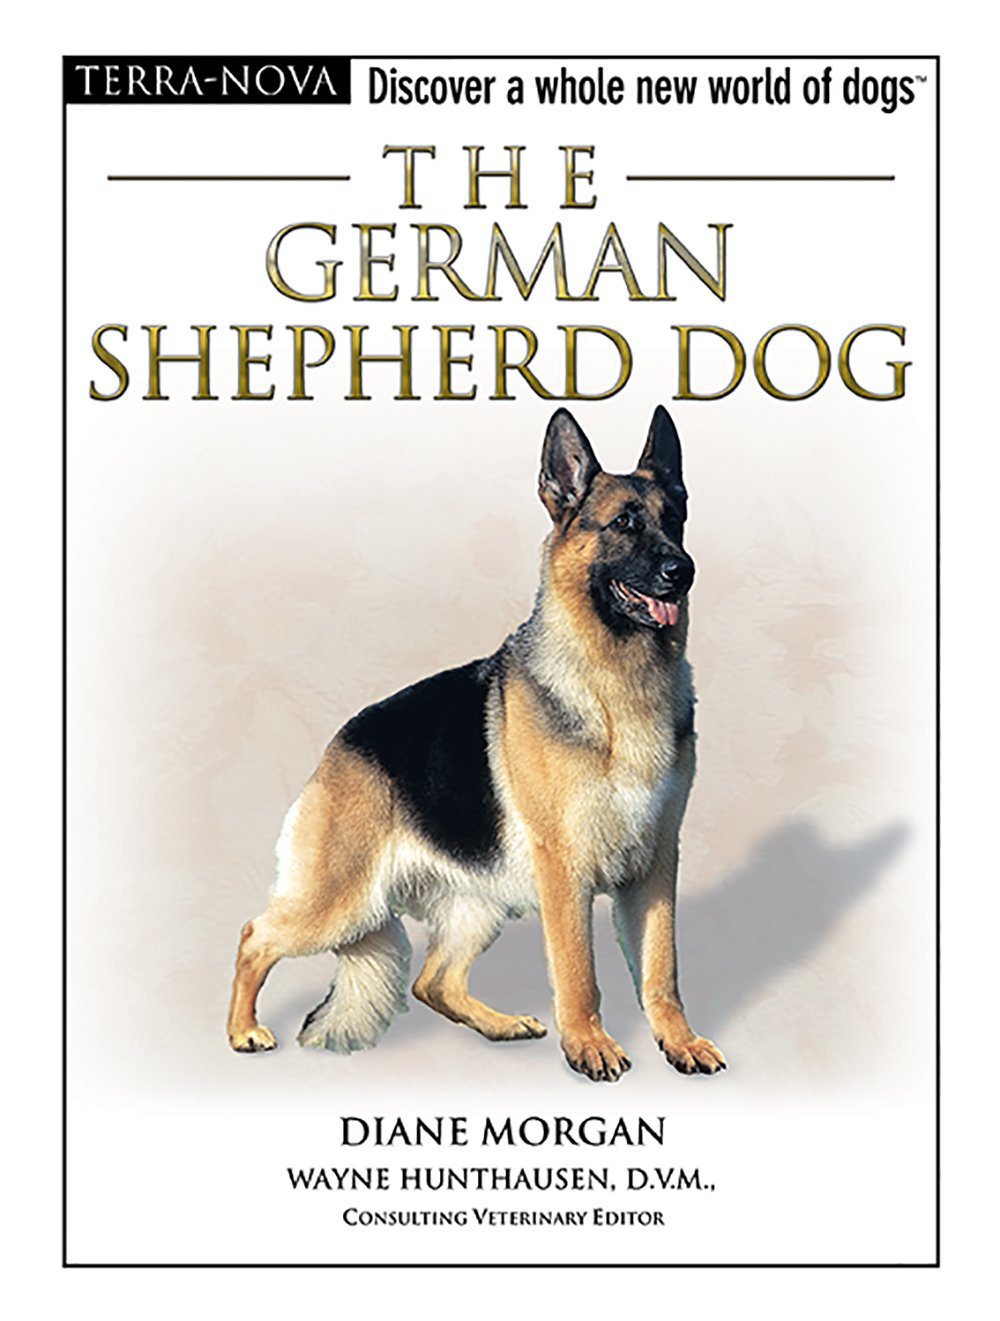 Read Online The German Shepherd Dog (Terra-Nova) pdf